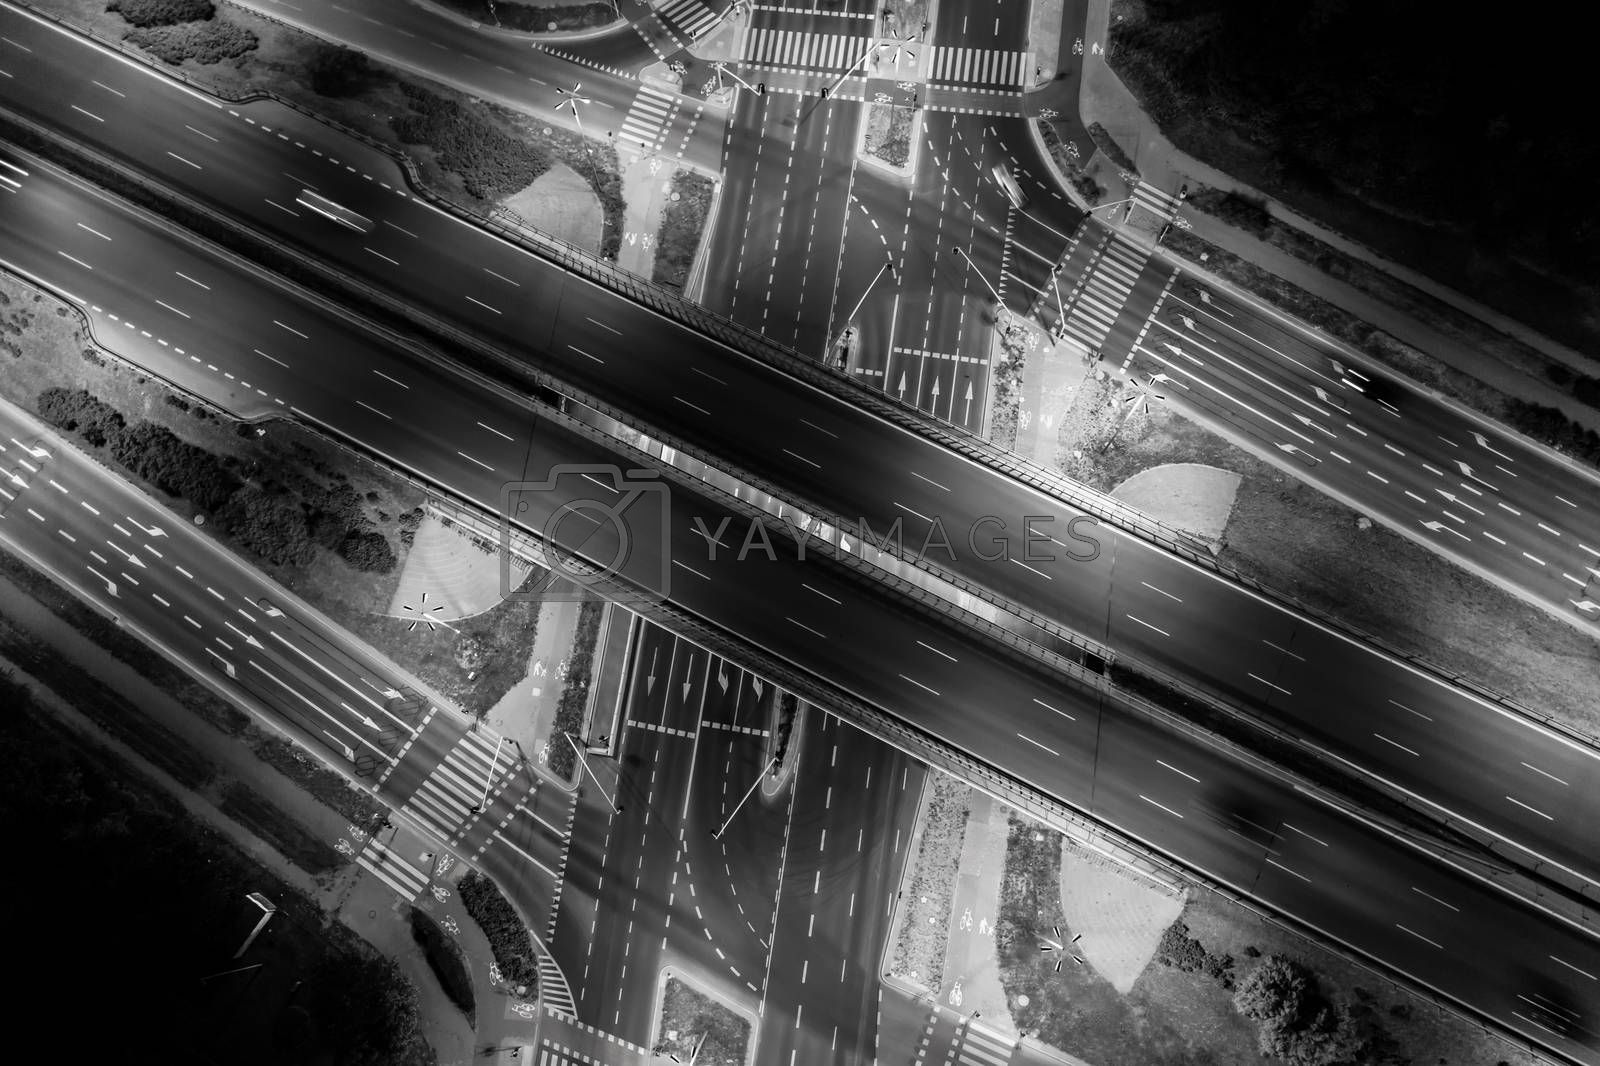 Aerial view of a Unique City Roads and Interchanges, Bangkok Expressway top view, Top view over the highway, expressway and motorway at night Aerial view from drone